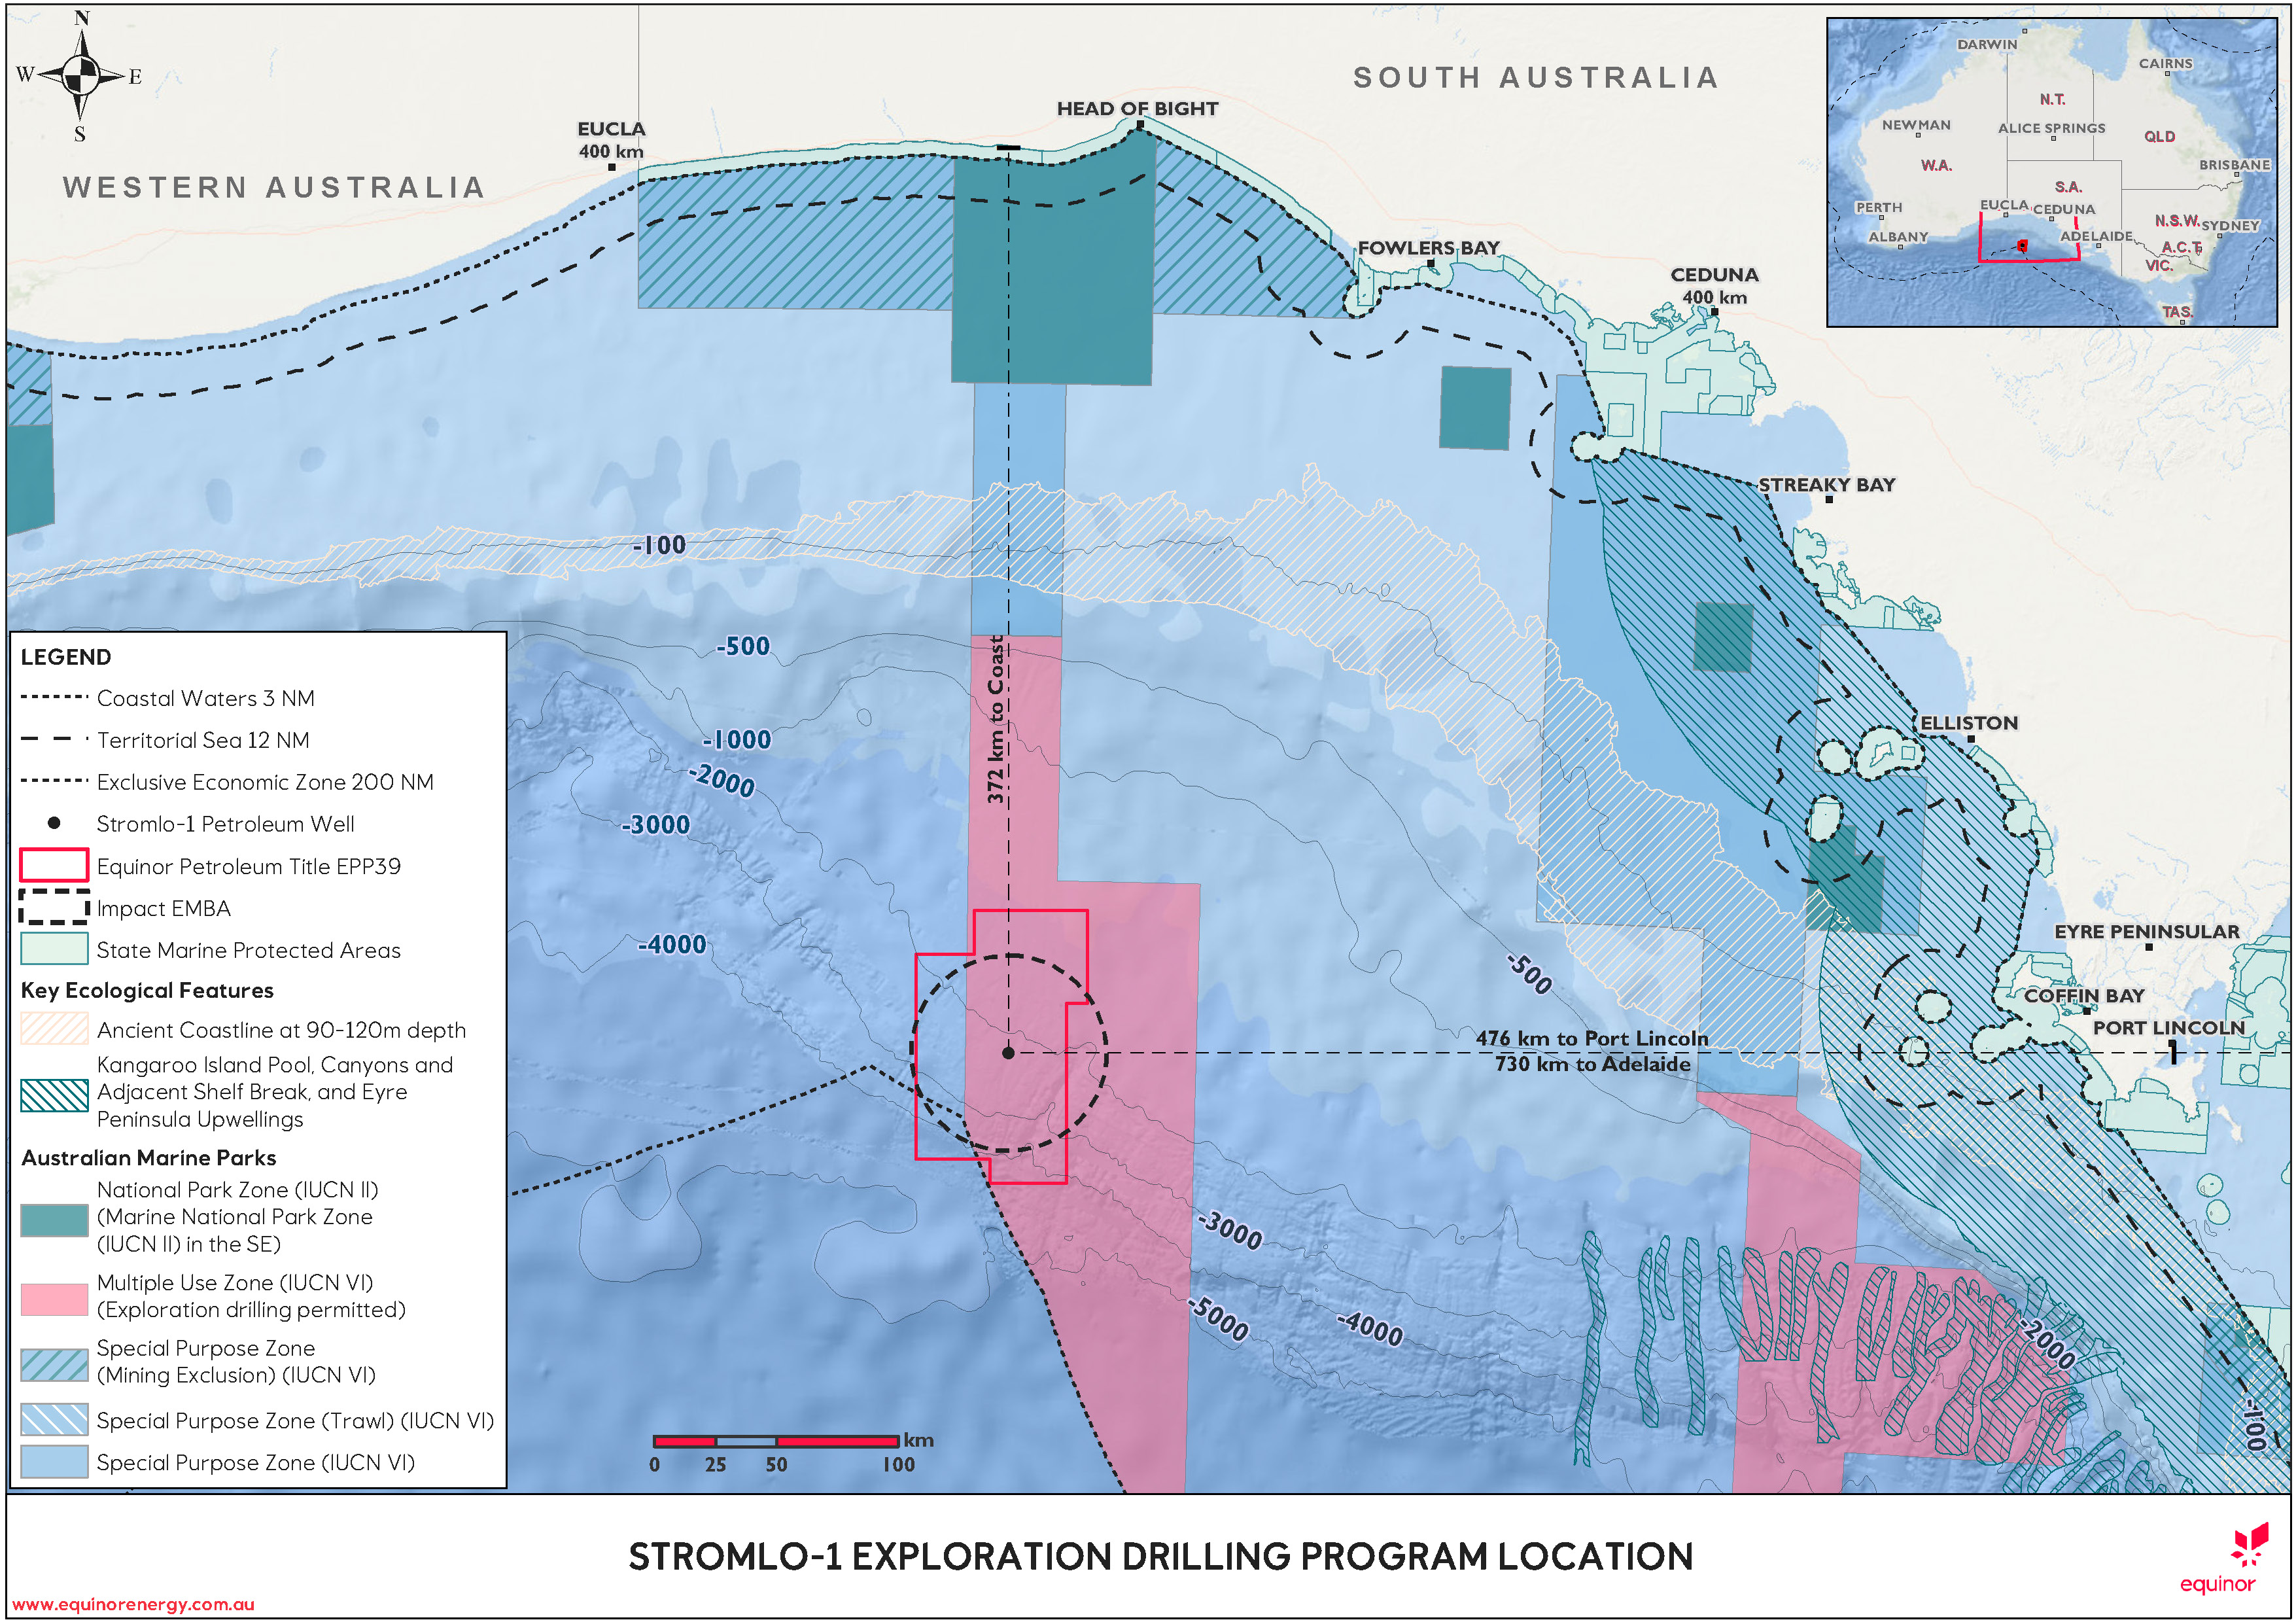 Location map - Activity: Stromlo-1 Exploration Drilling Program (refer to description)